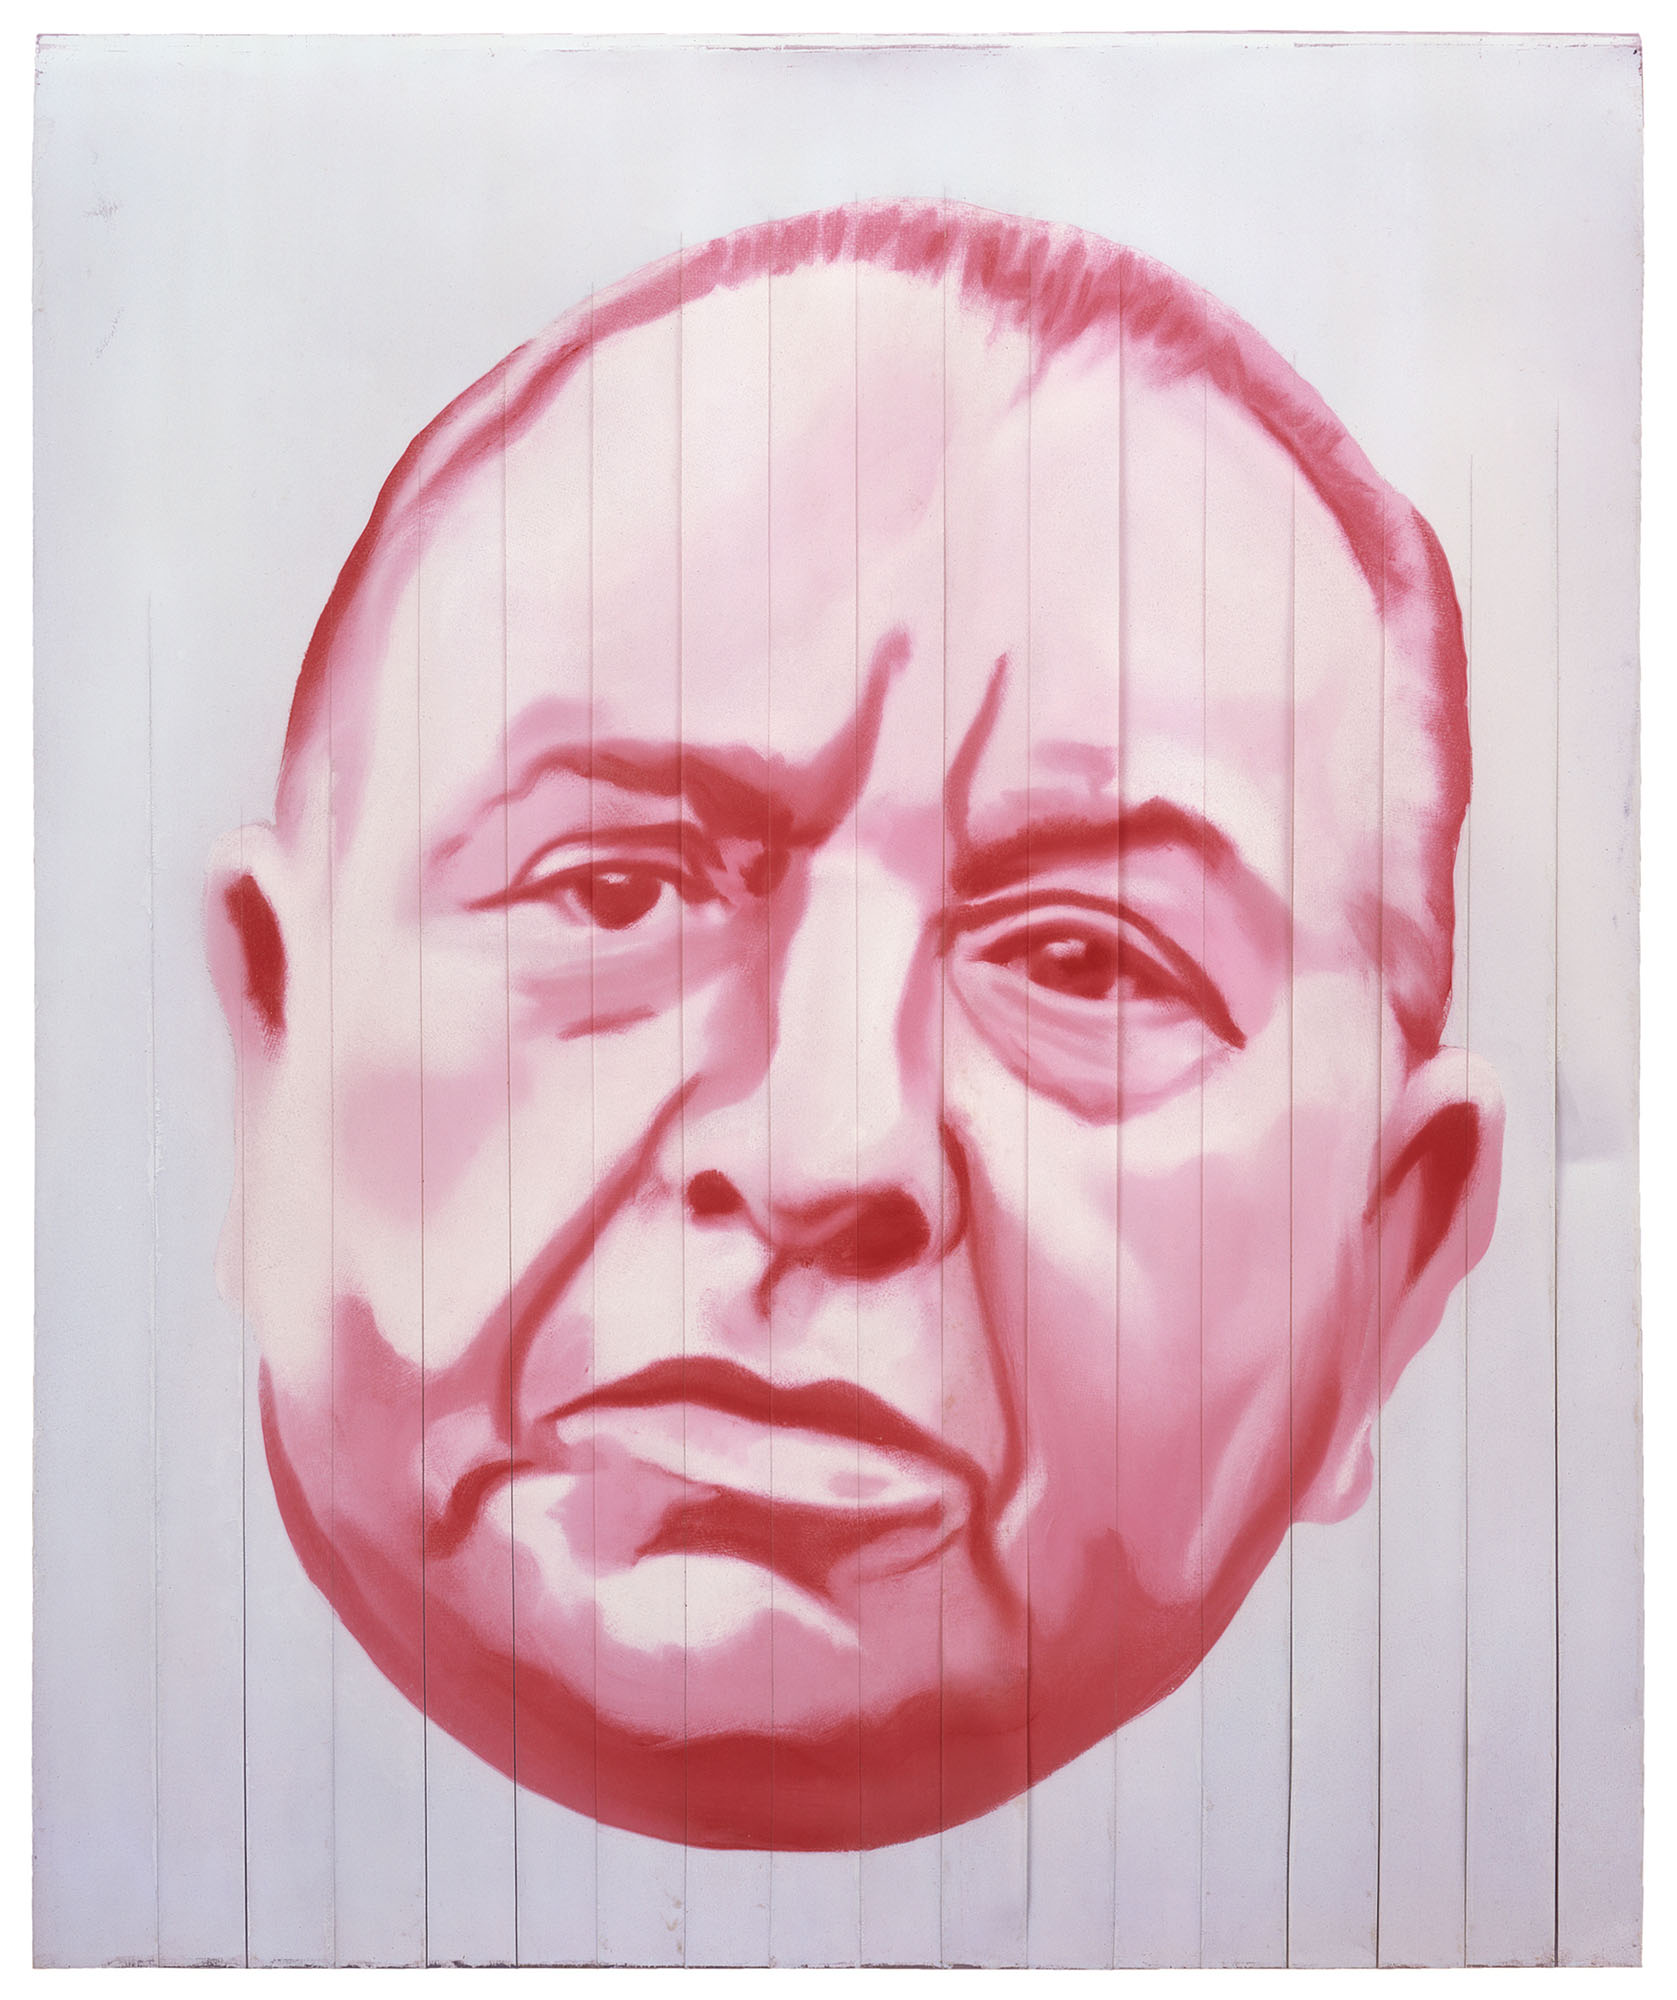 James Rosenquist, Mayor Daley, 1968. Oil on aluminum panel and Mylar. Collection of the artist. Photo courtesy of Rosenquist studios